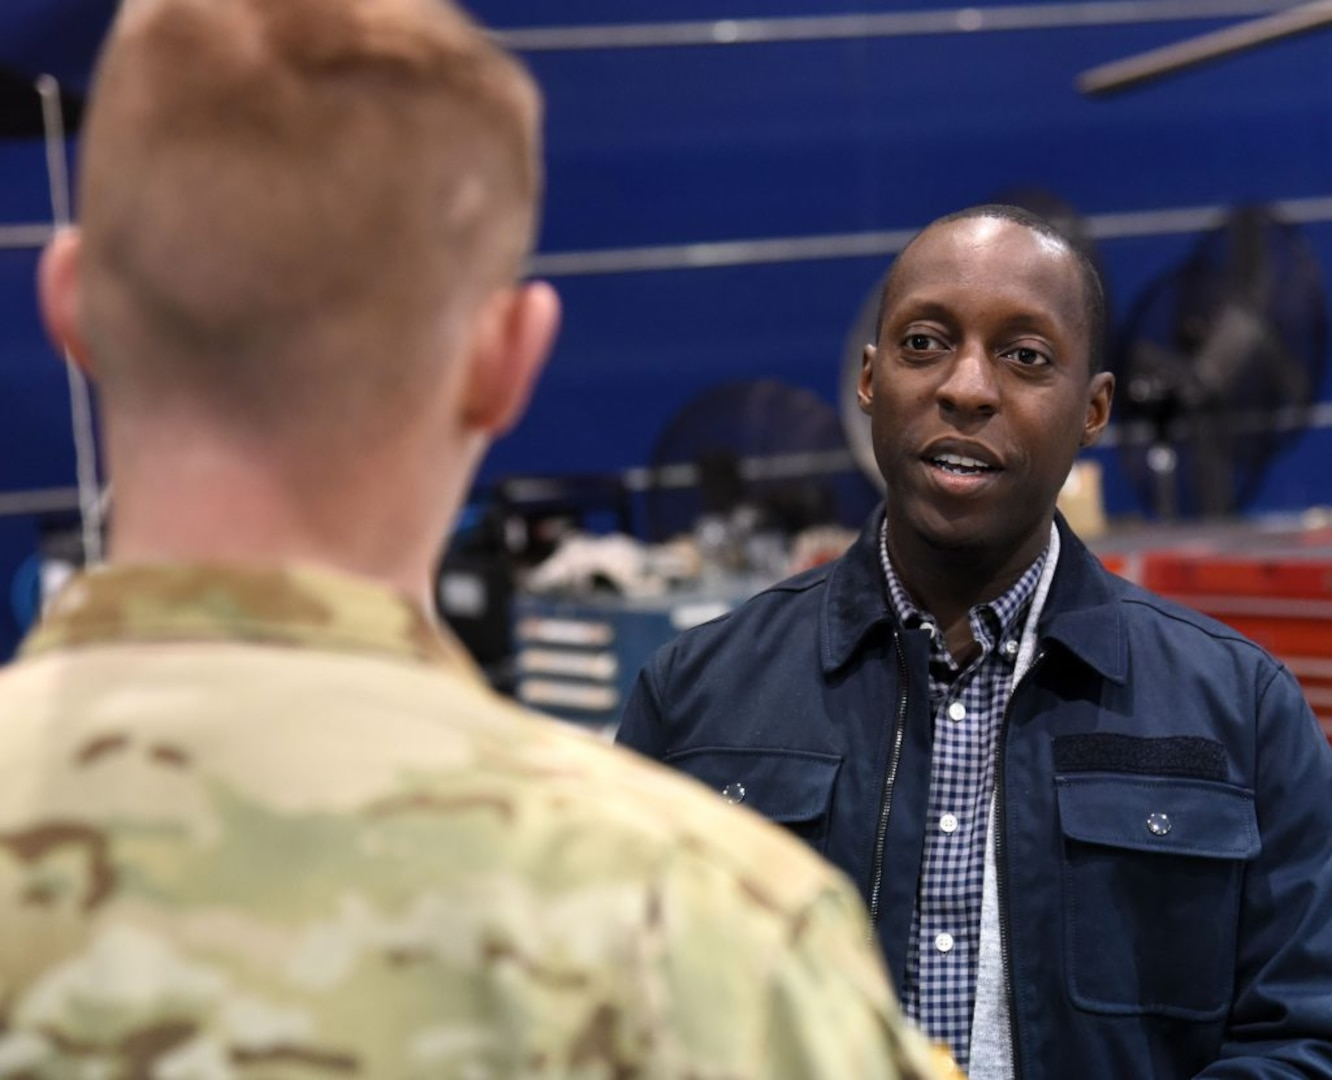 Full-time psychological health support available to VaARNG